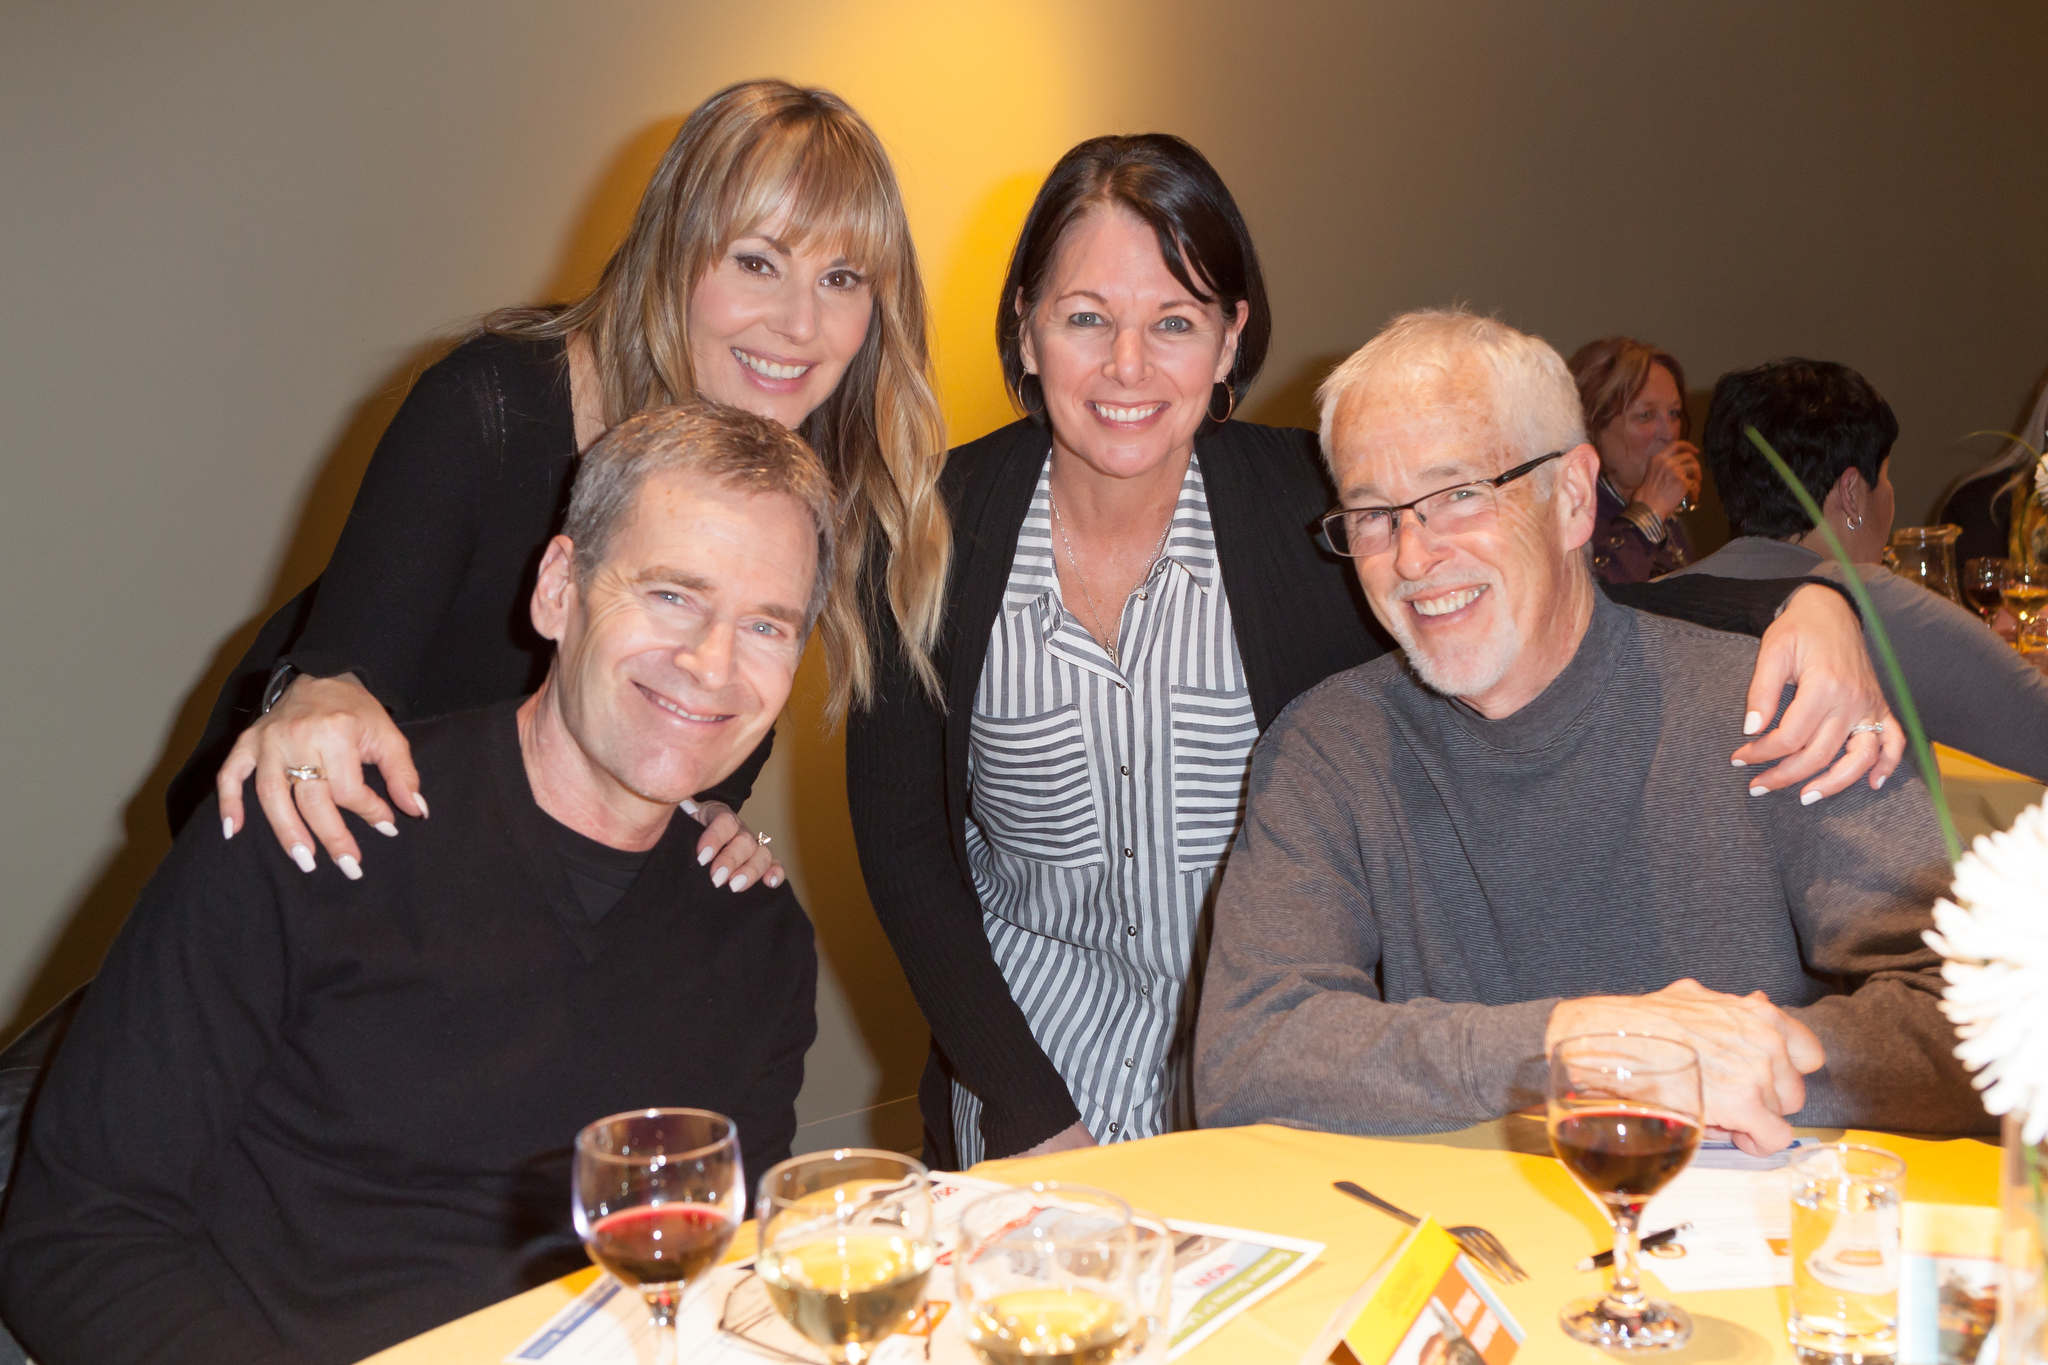 Image of two women and two men at a wine tasting